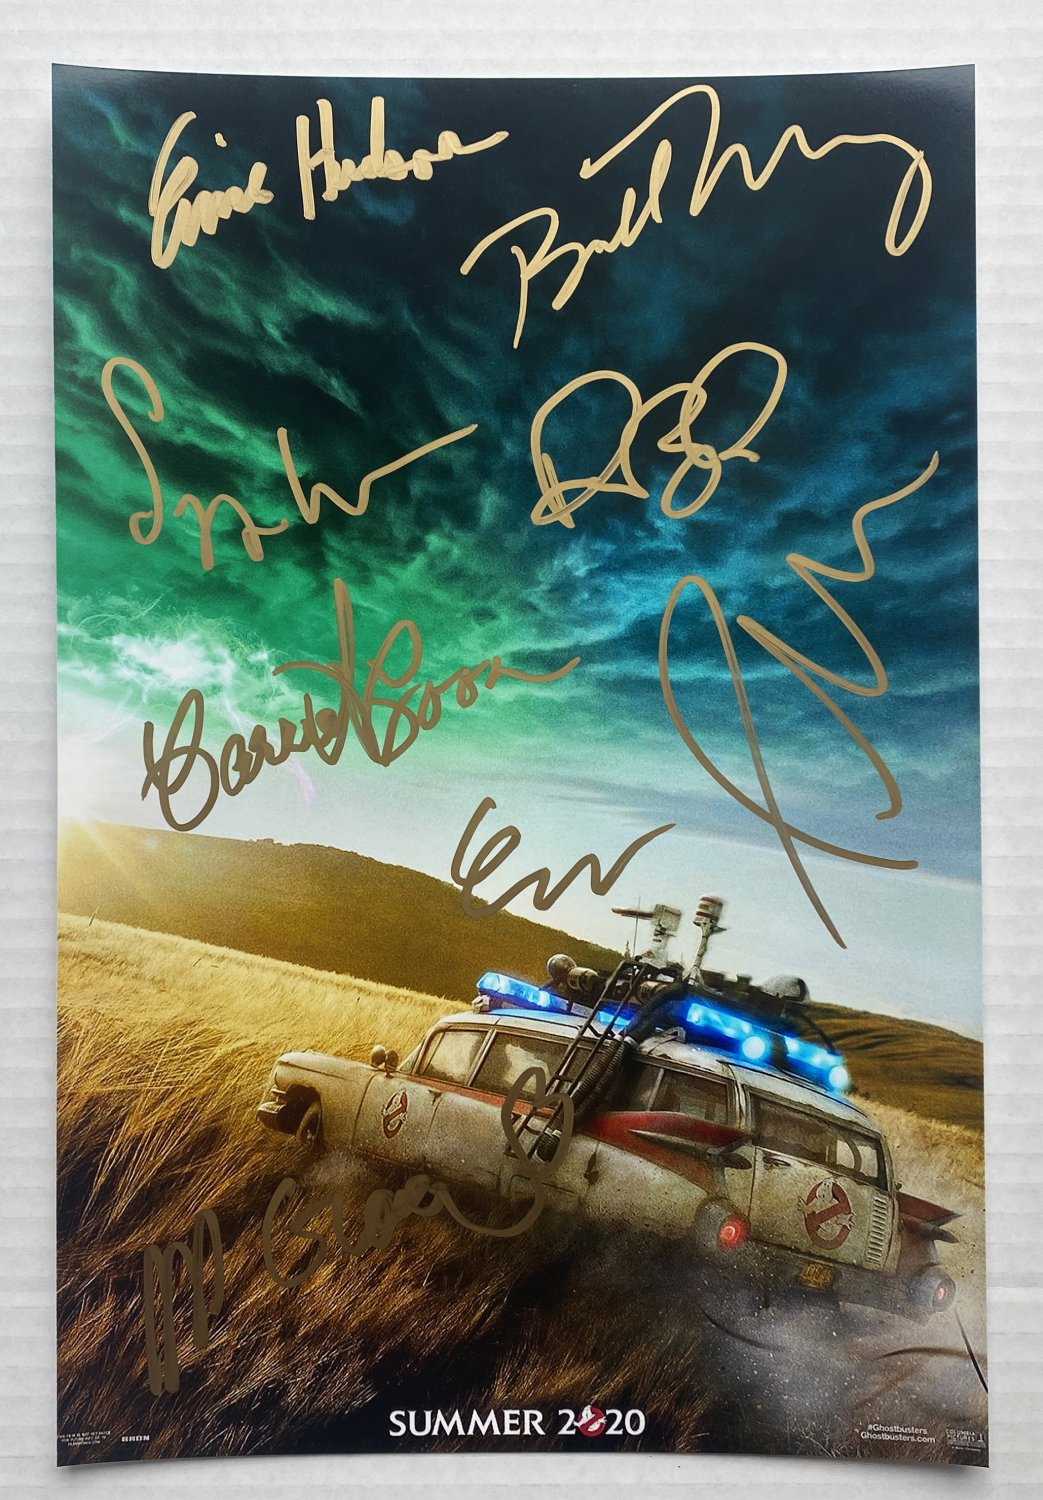 Ghostbusters 3 Afterlife cast signed autographed 8x12 photo Bill Murray Dan Aykroyd photograph